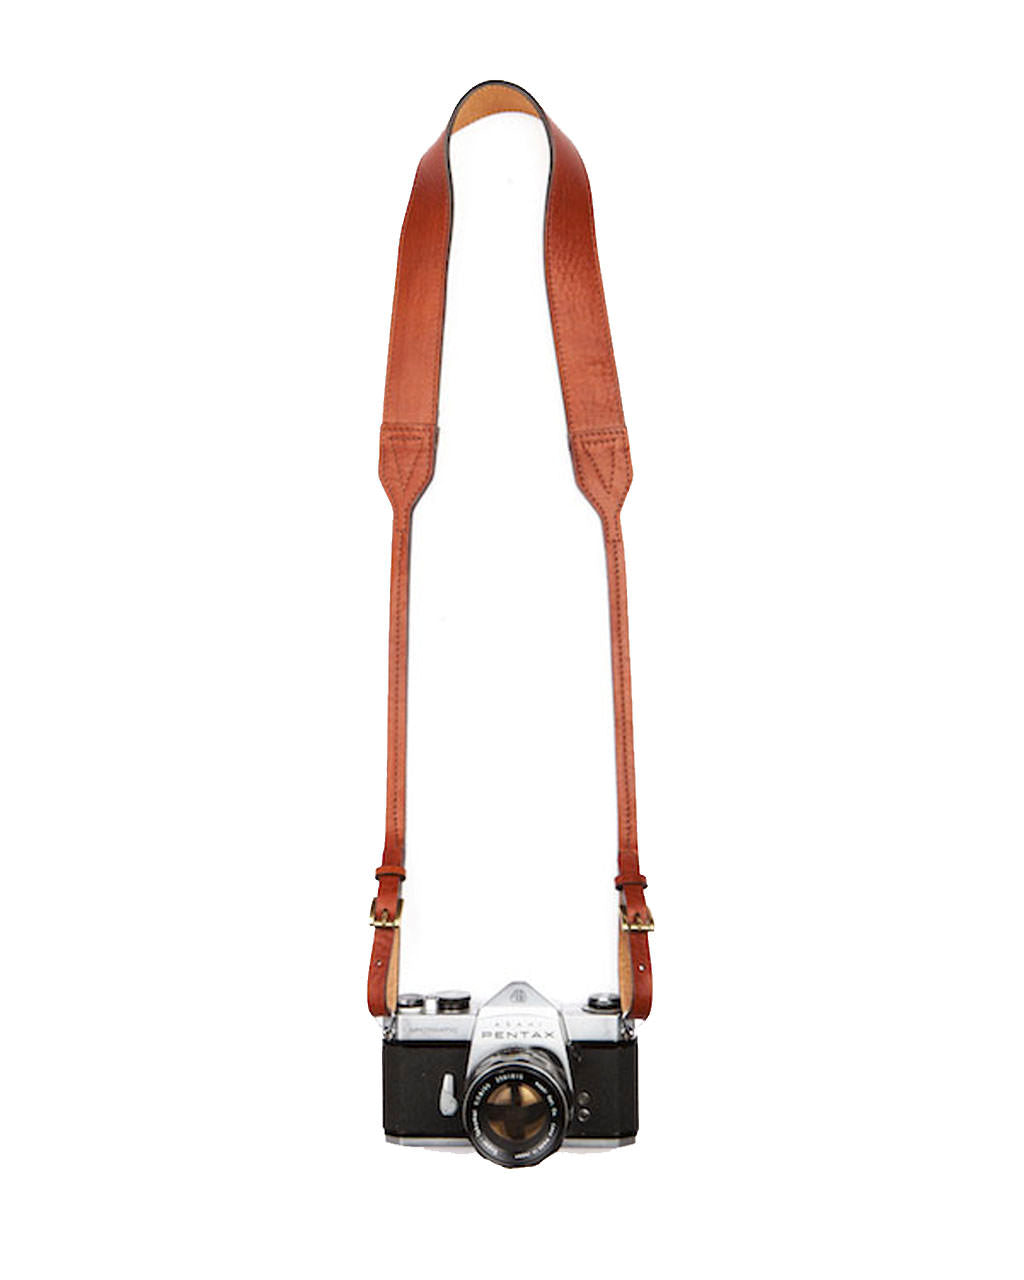 Leather camera strap on camera